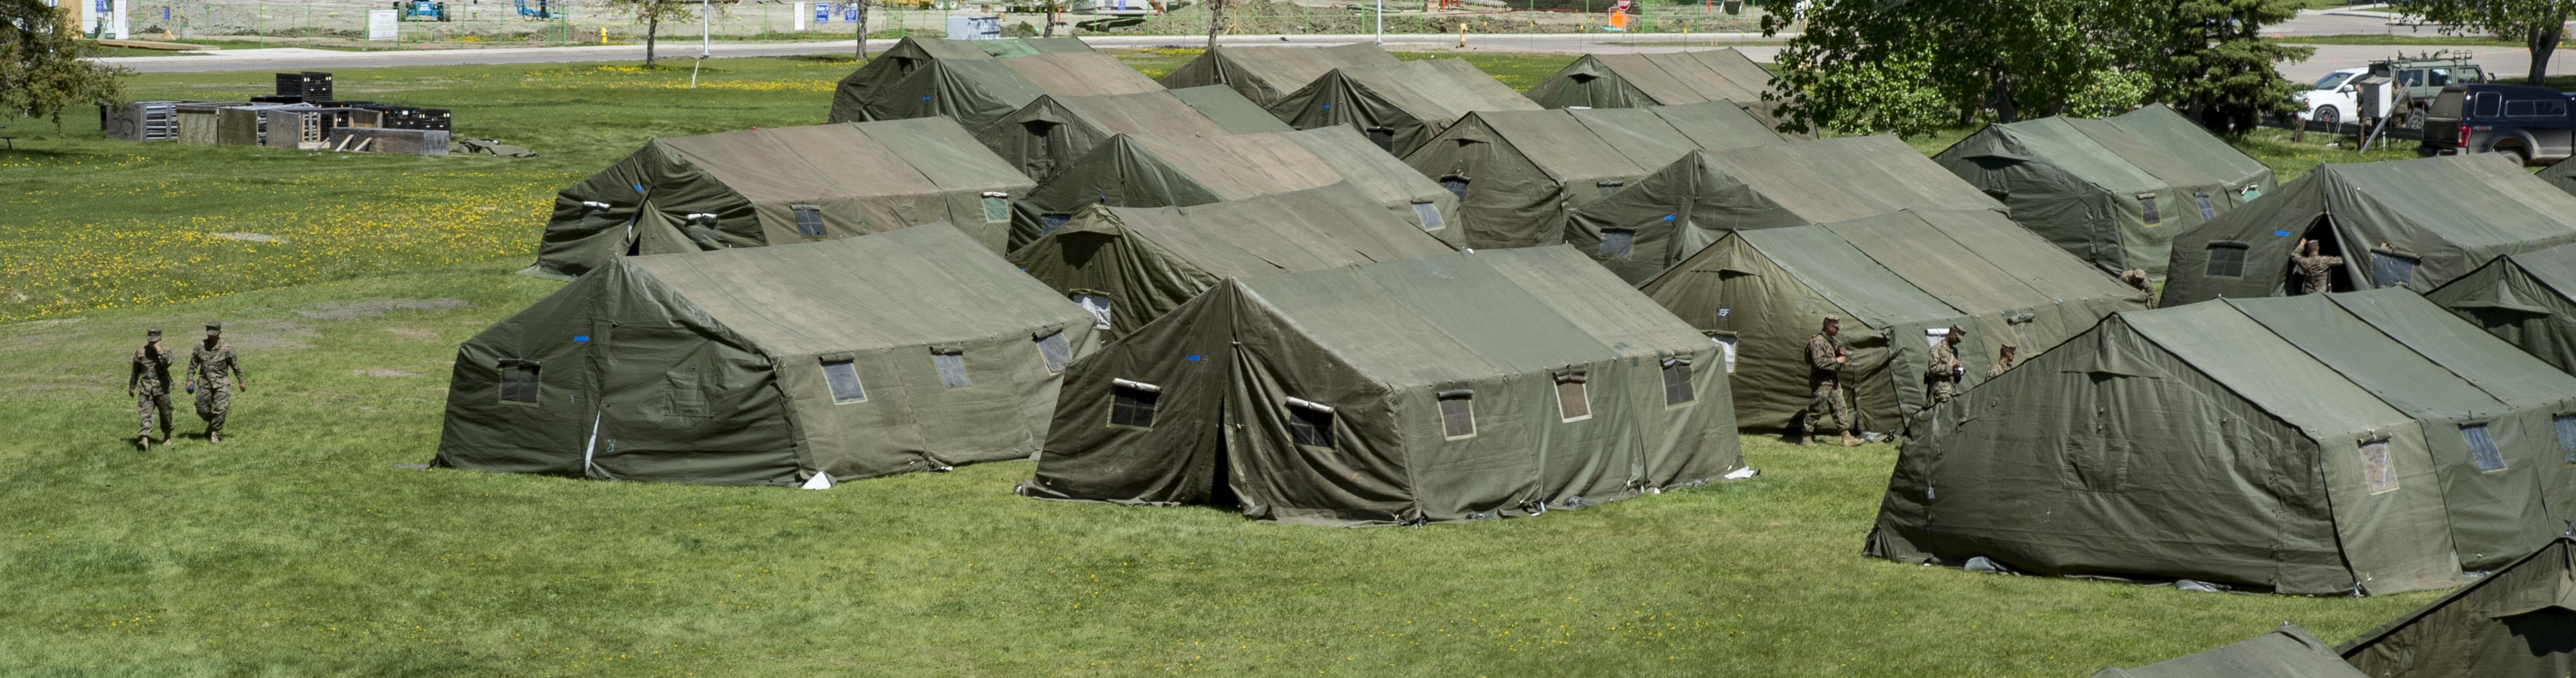 Personnel from the United States Marine Corps construct their living quarters on May 28, 2017. The tents are their temporary homes for the duration of Exercise Maple Flag 50 at 4 Wing Cold Lake, Alberta.  PHOTO: Master Corporal H.J.L. MacRae, CK05-2017-0461-001